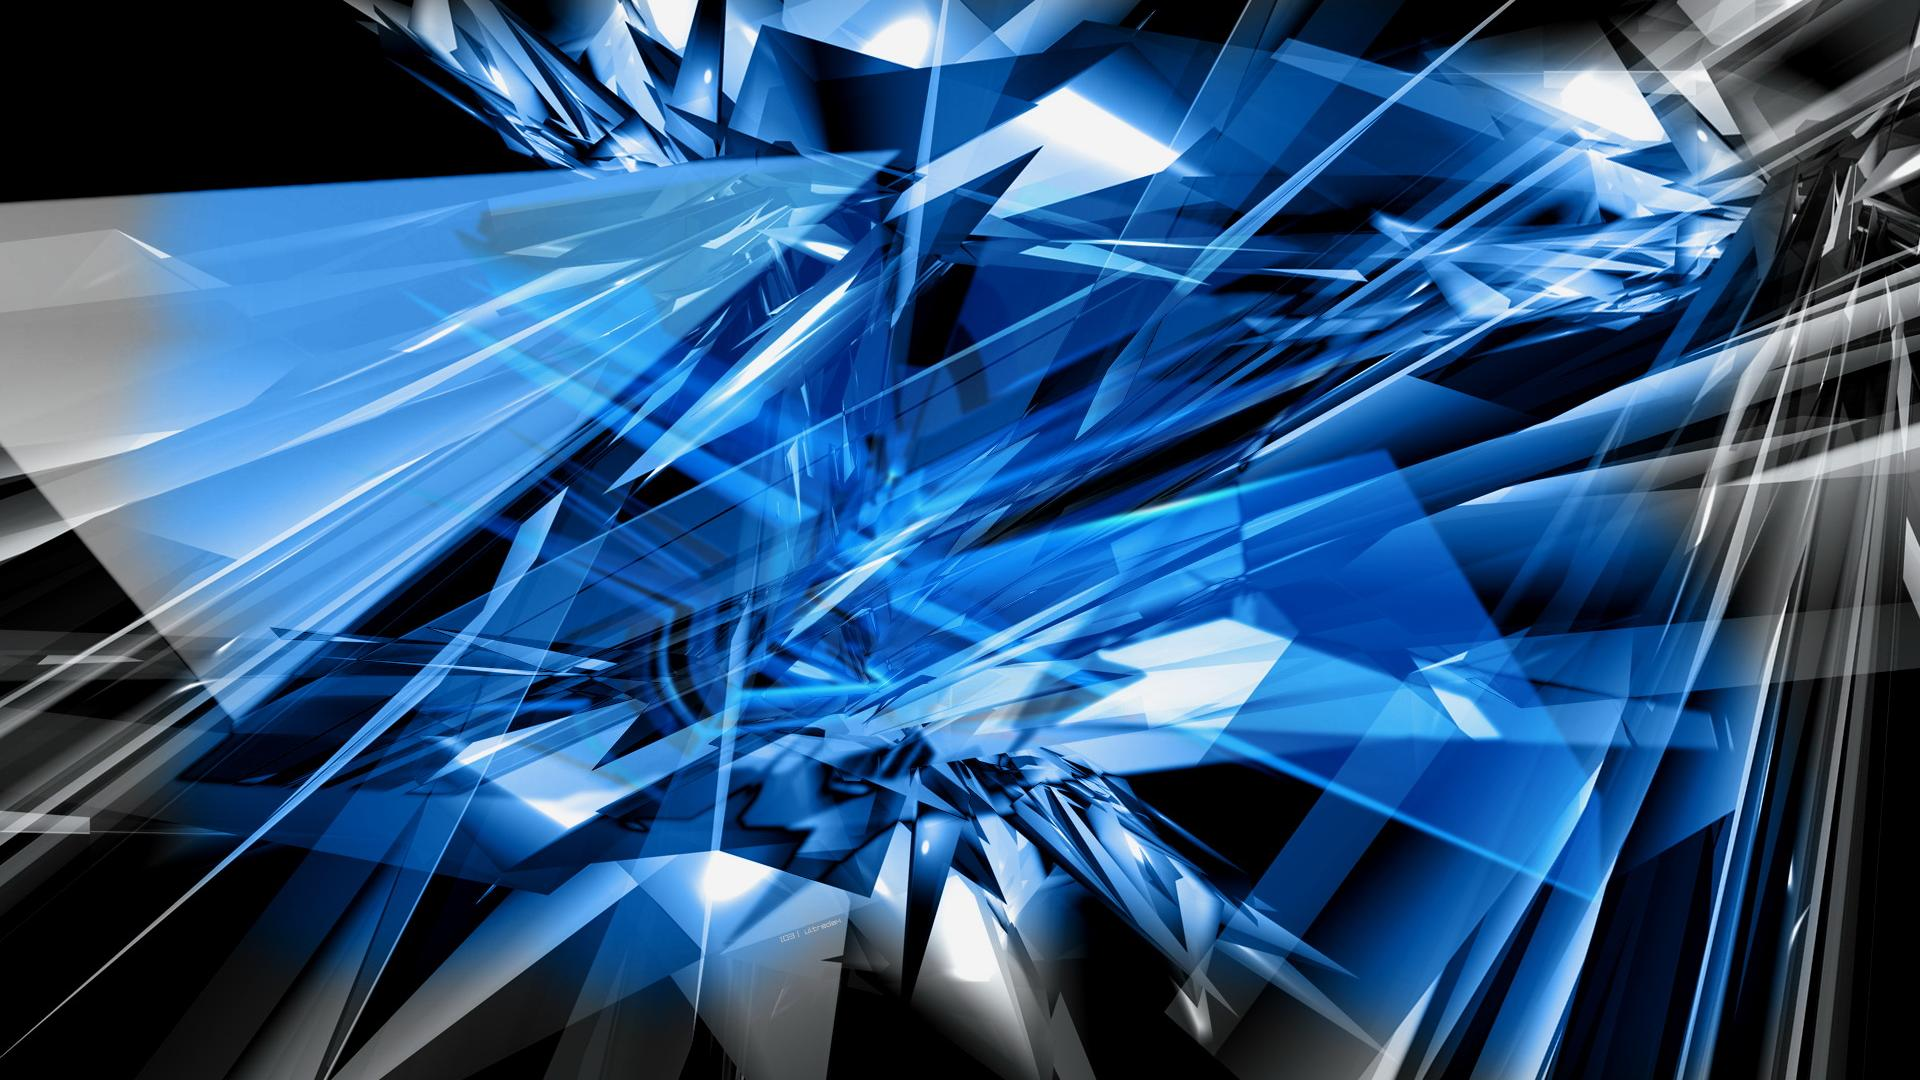 Blue Abstract Wallpaper for PC - WallpaperSafari